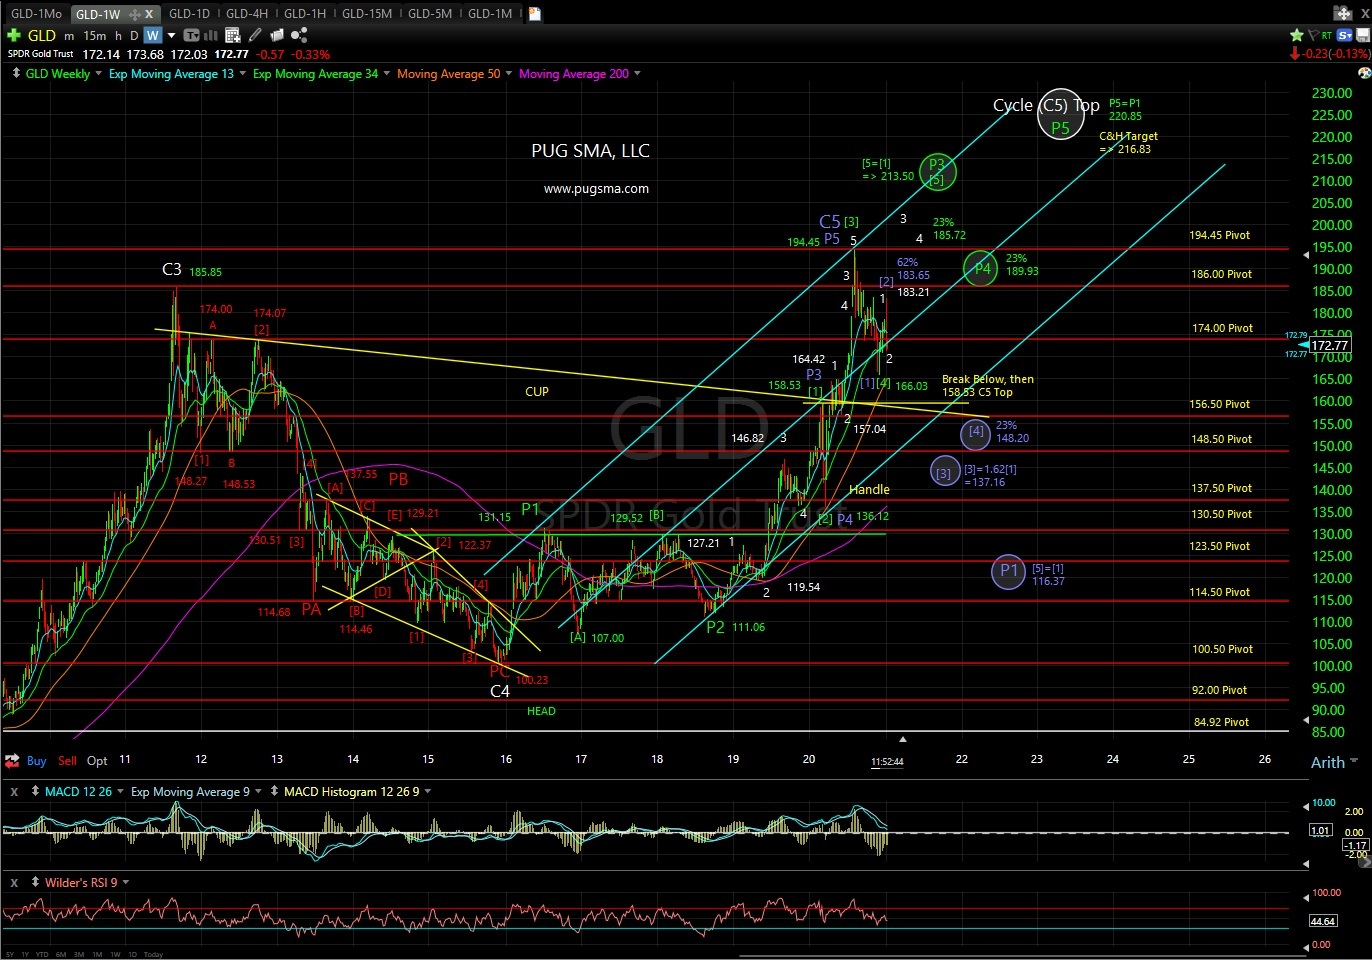 GLD (Gold) Technical Analysis